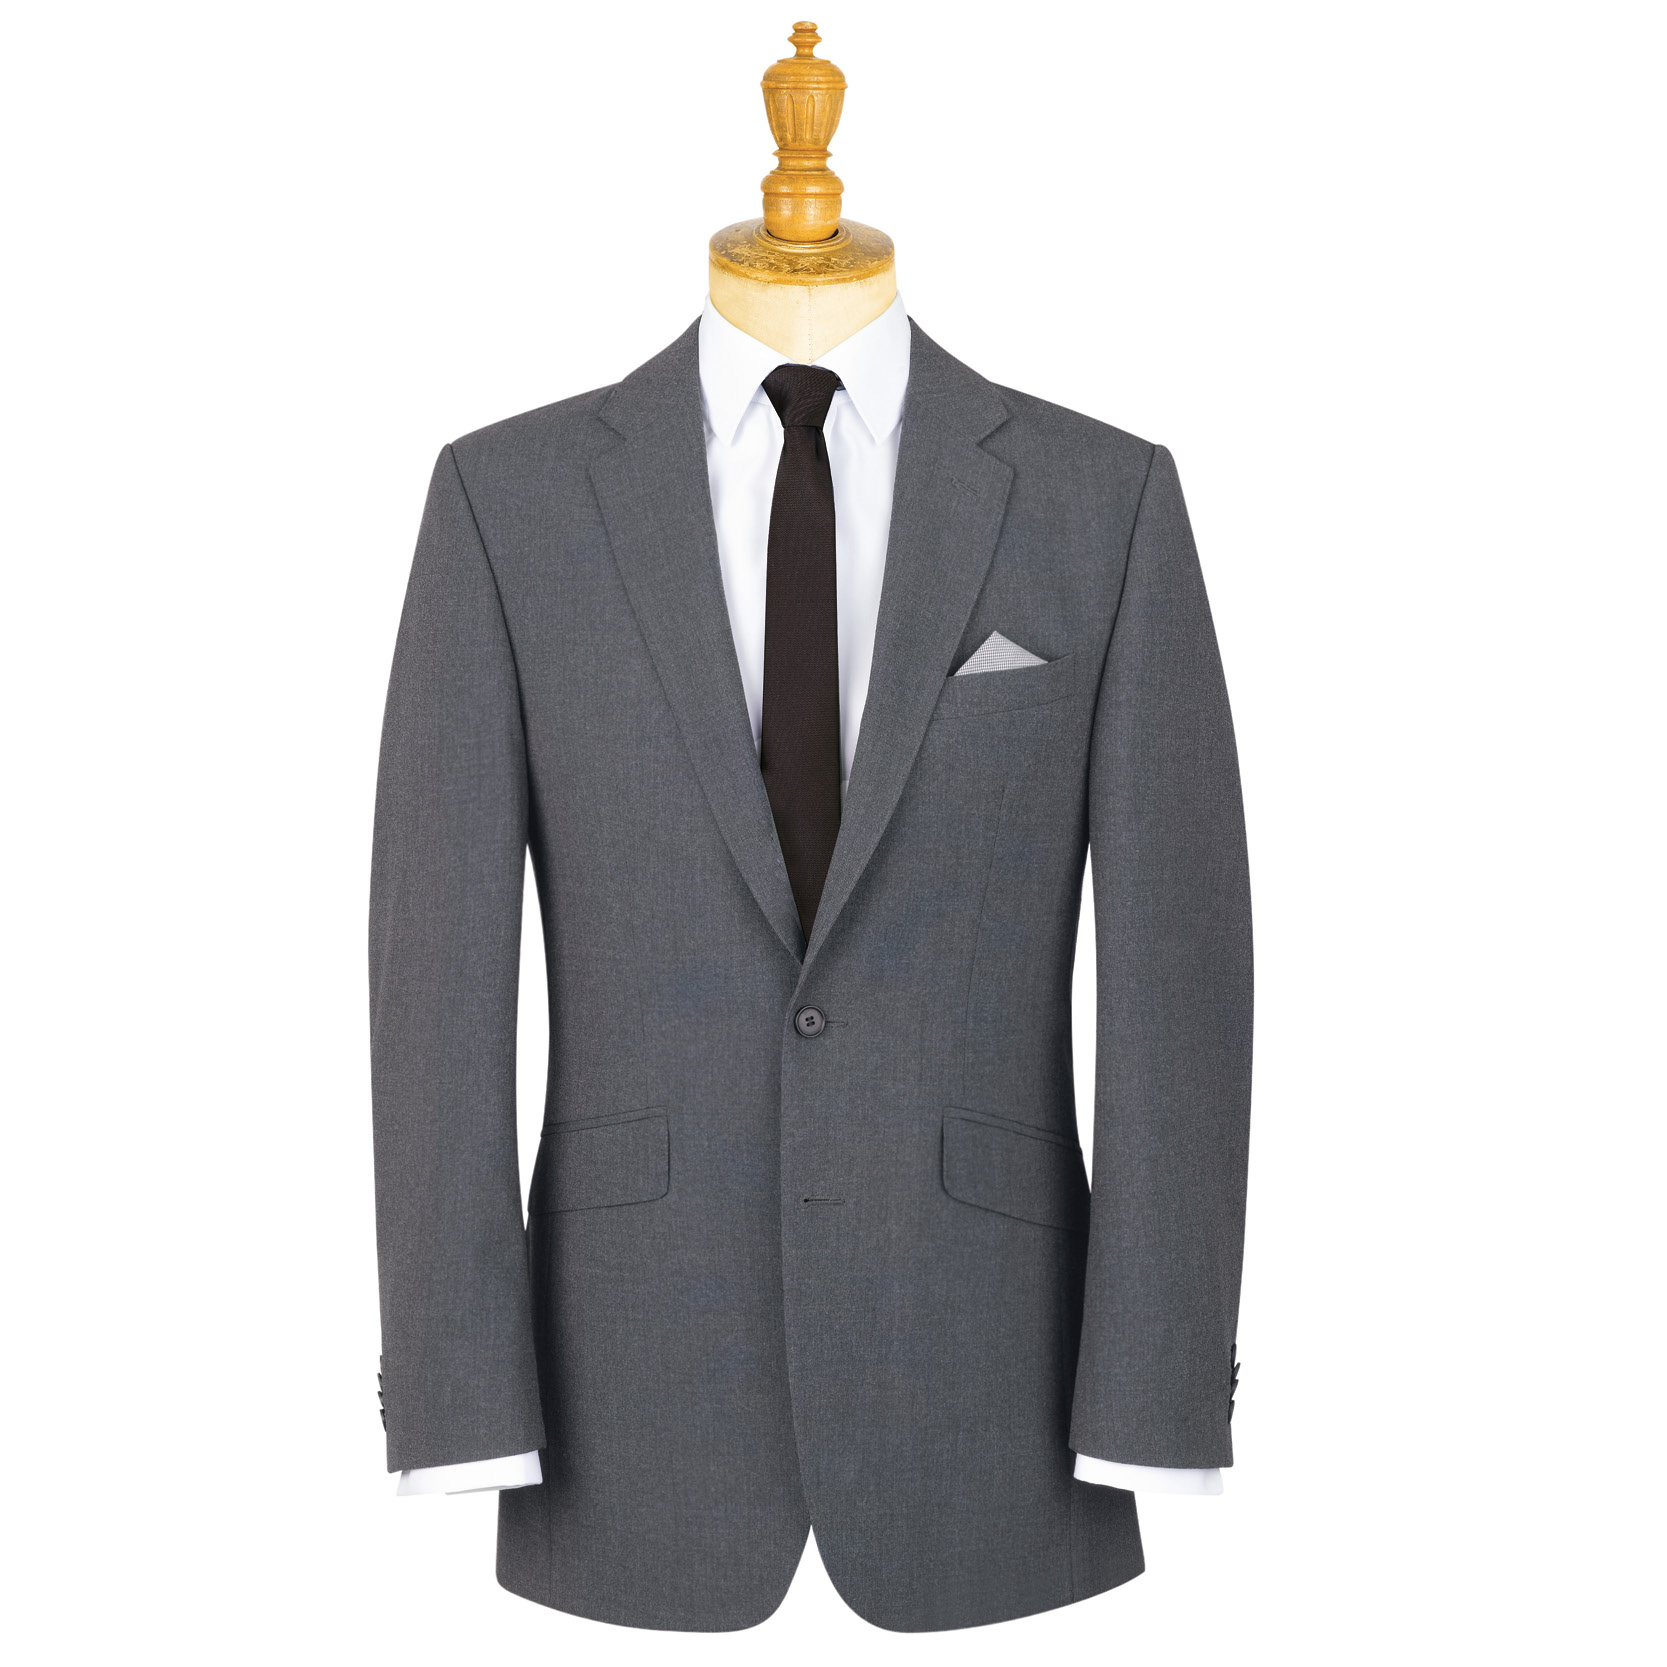 BK Sixth Form Mens Suit Jacket